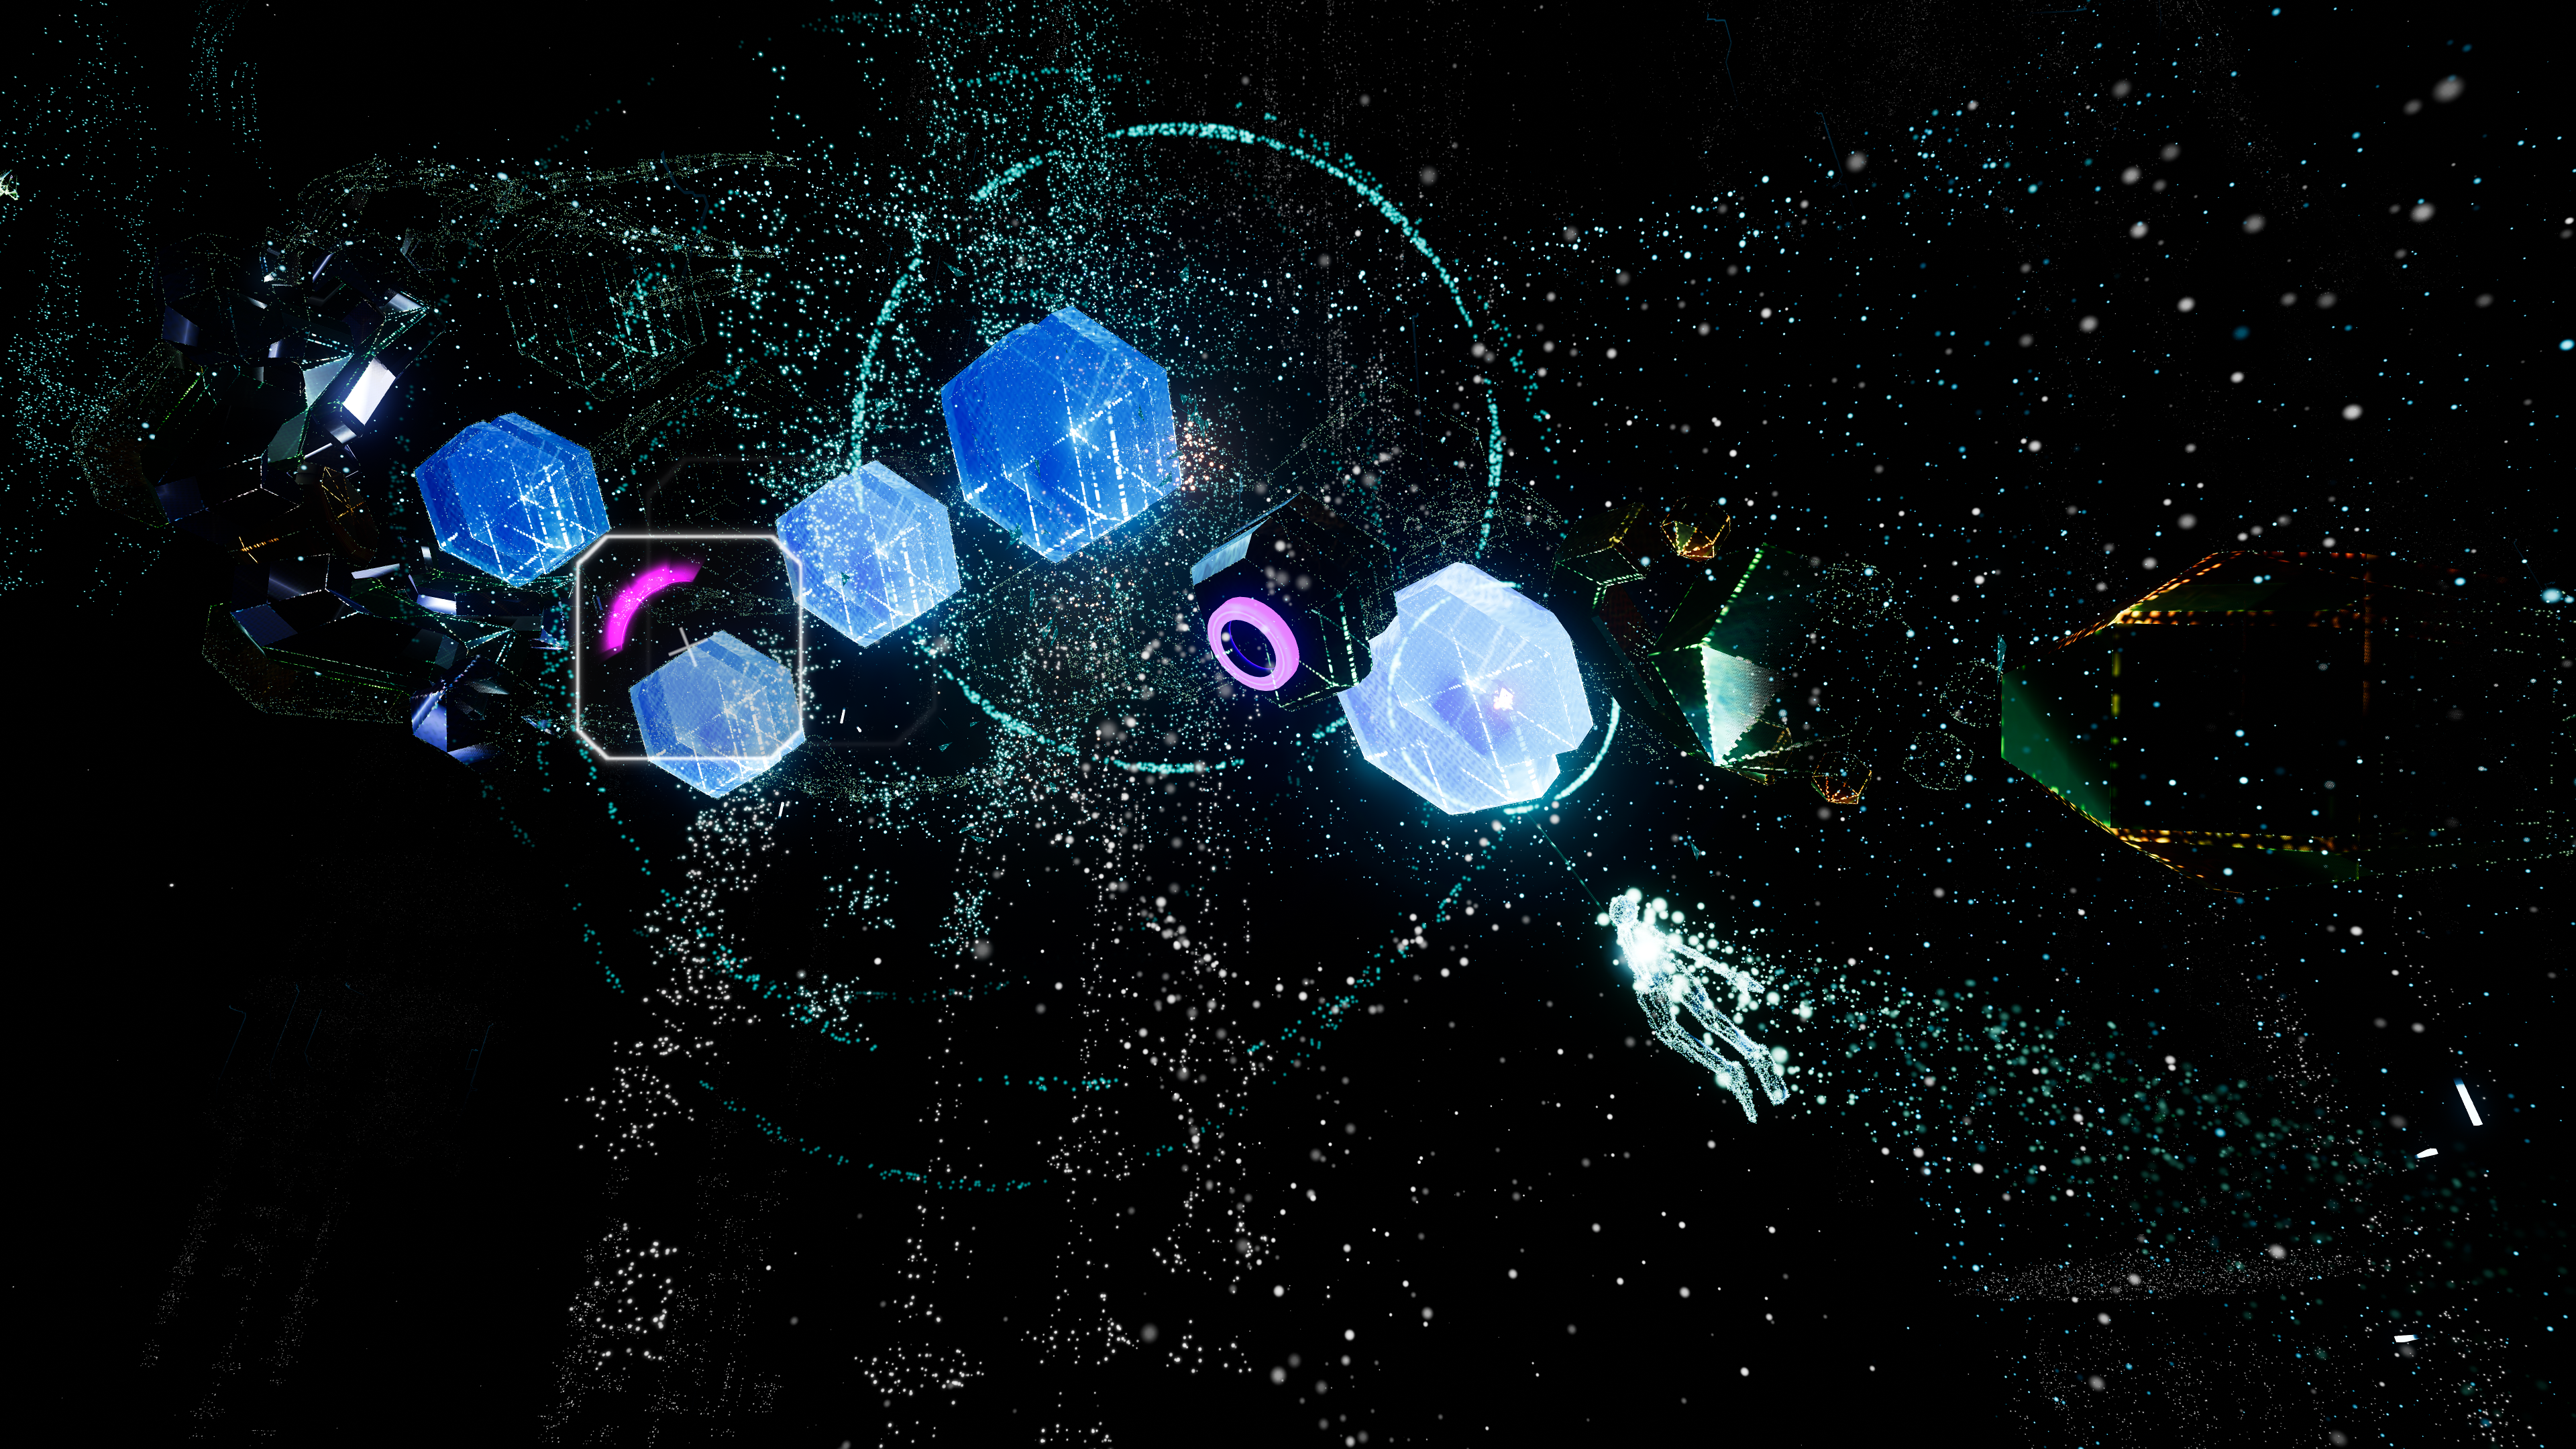 Rez Infinite Is Now Available On Oculus Rift And HTC Vive